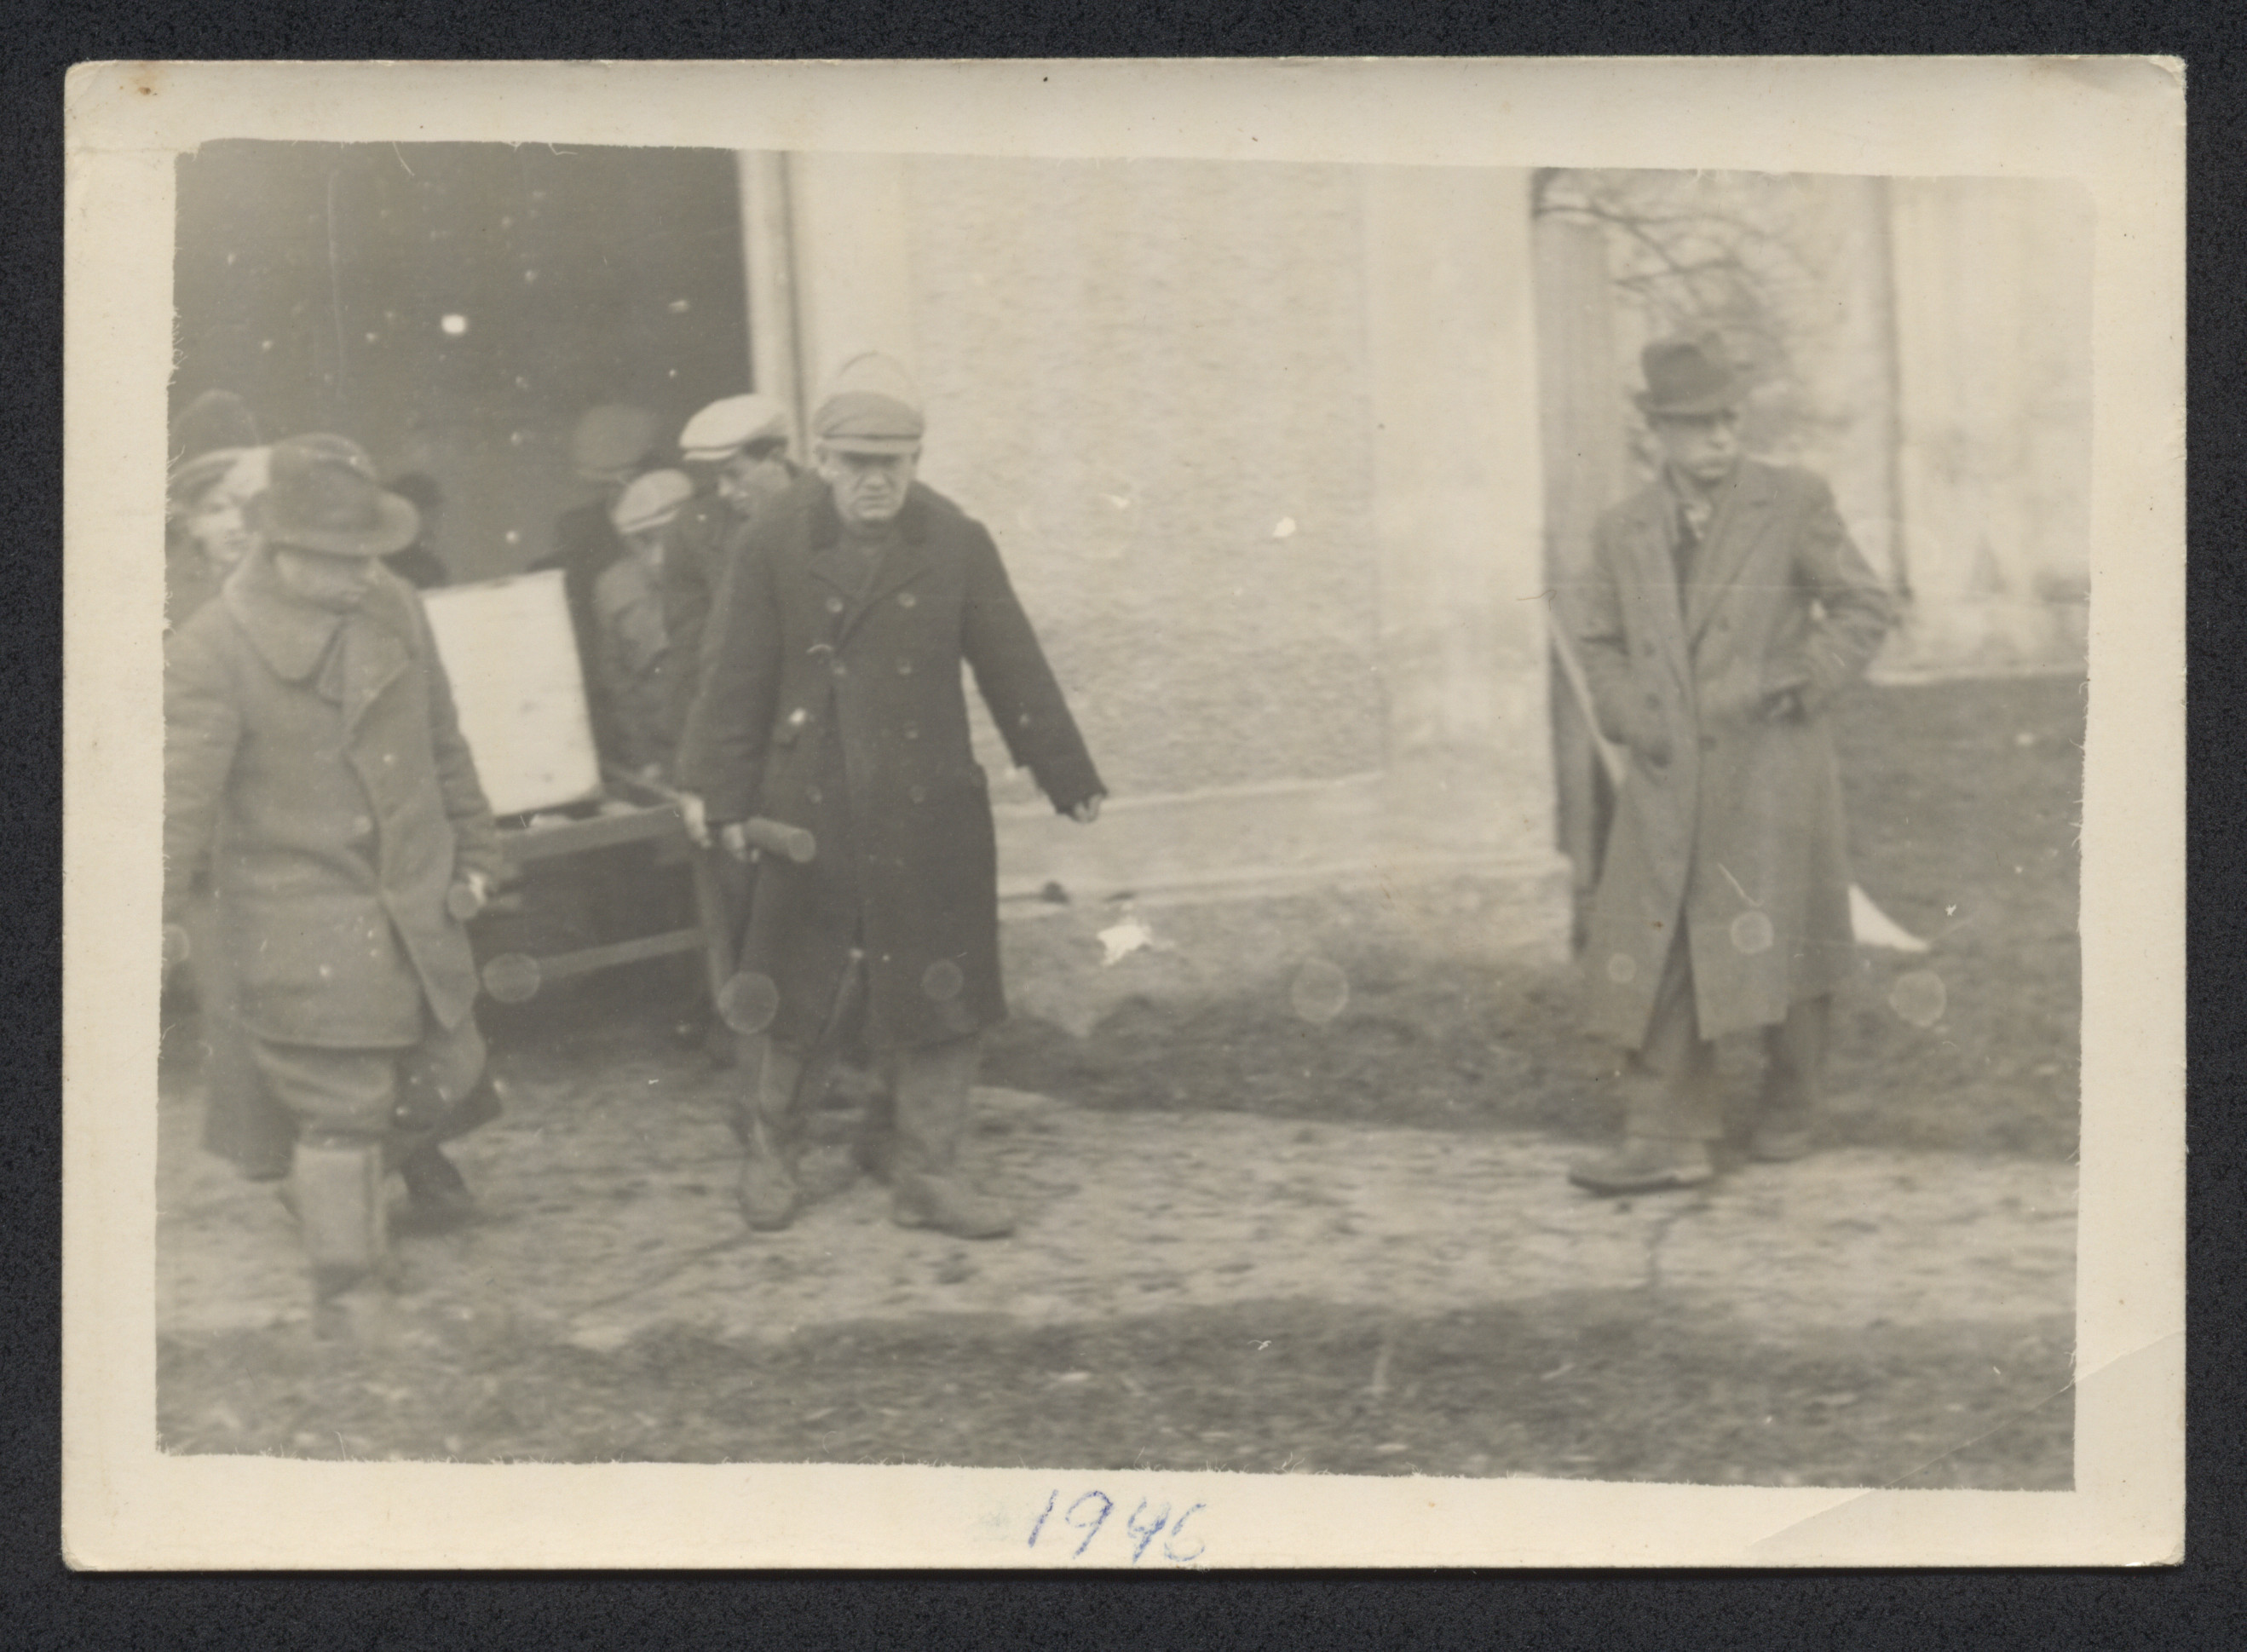 Jewish displaced persons rebury exhumed corpses in Mauthausen one year after the liberation of the camp.